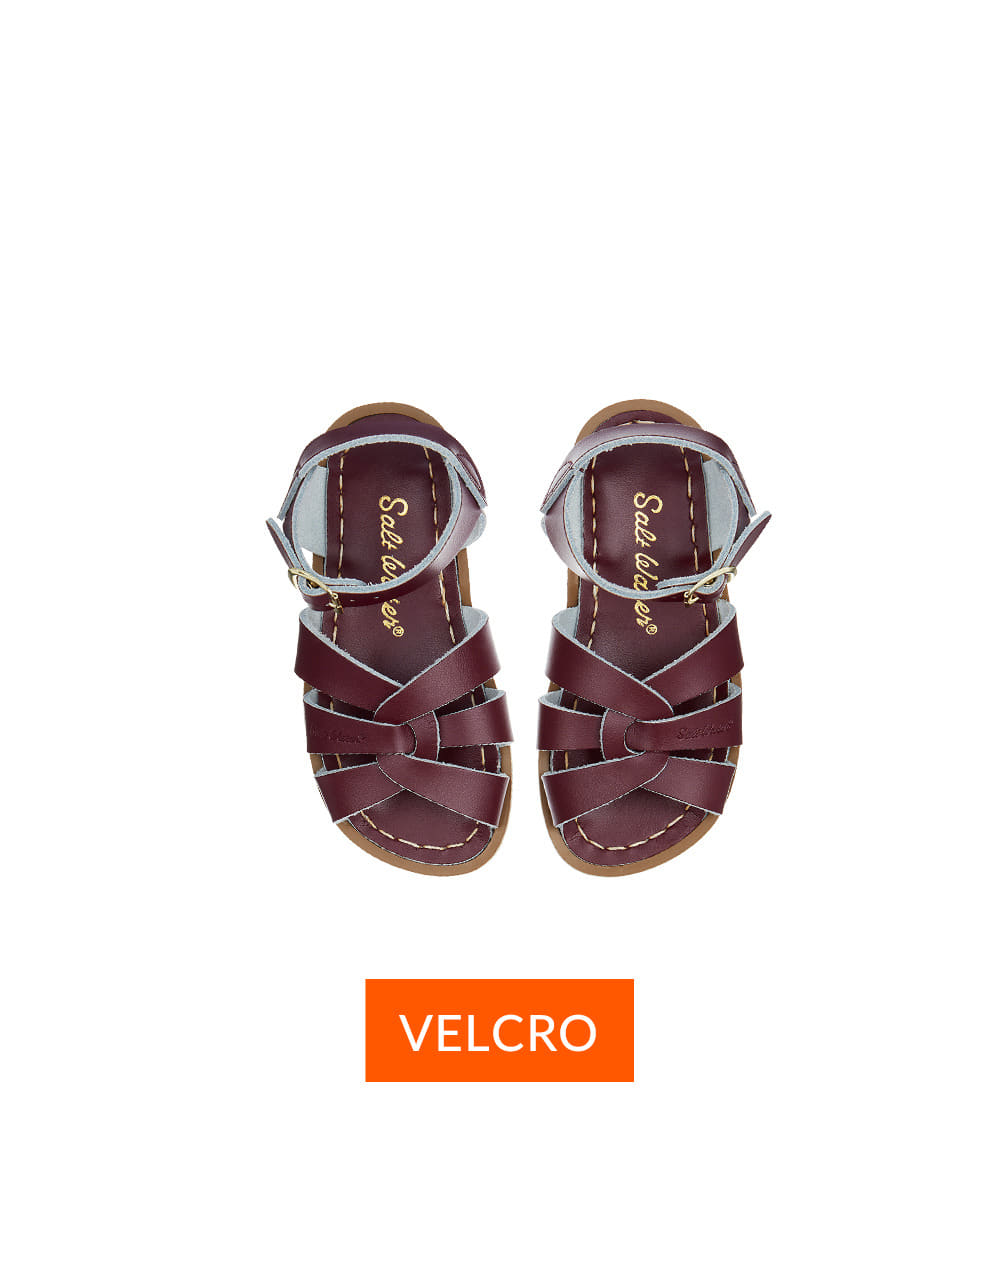 SALT-WATER SANDAL  CHILD VELCRO ORIGINAL  Claret